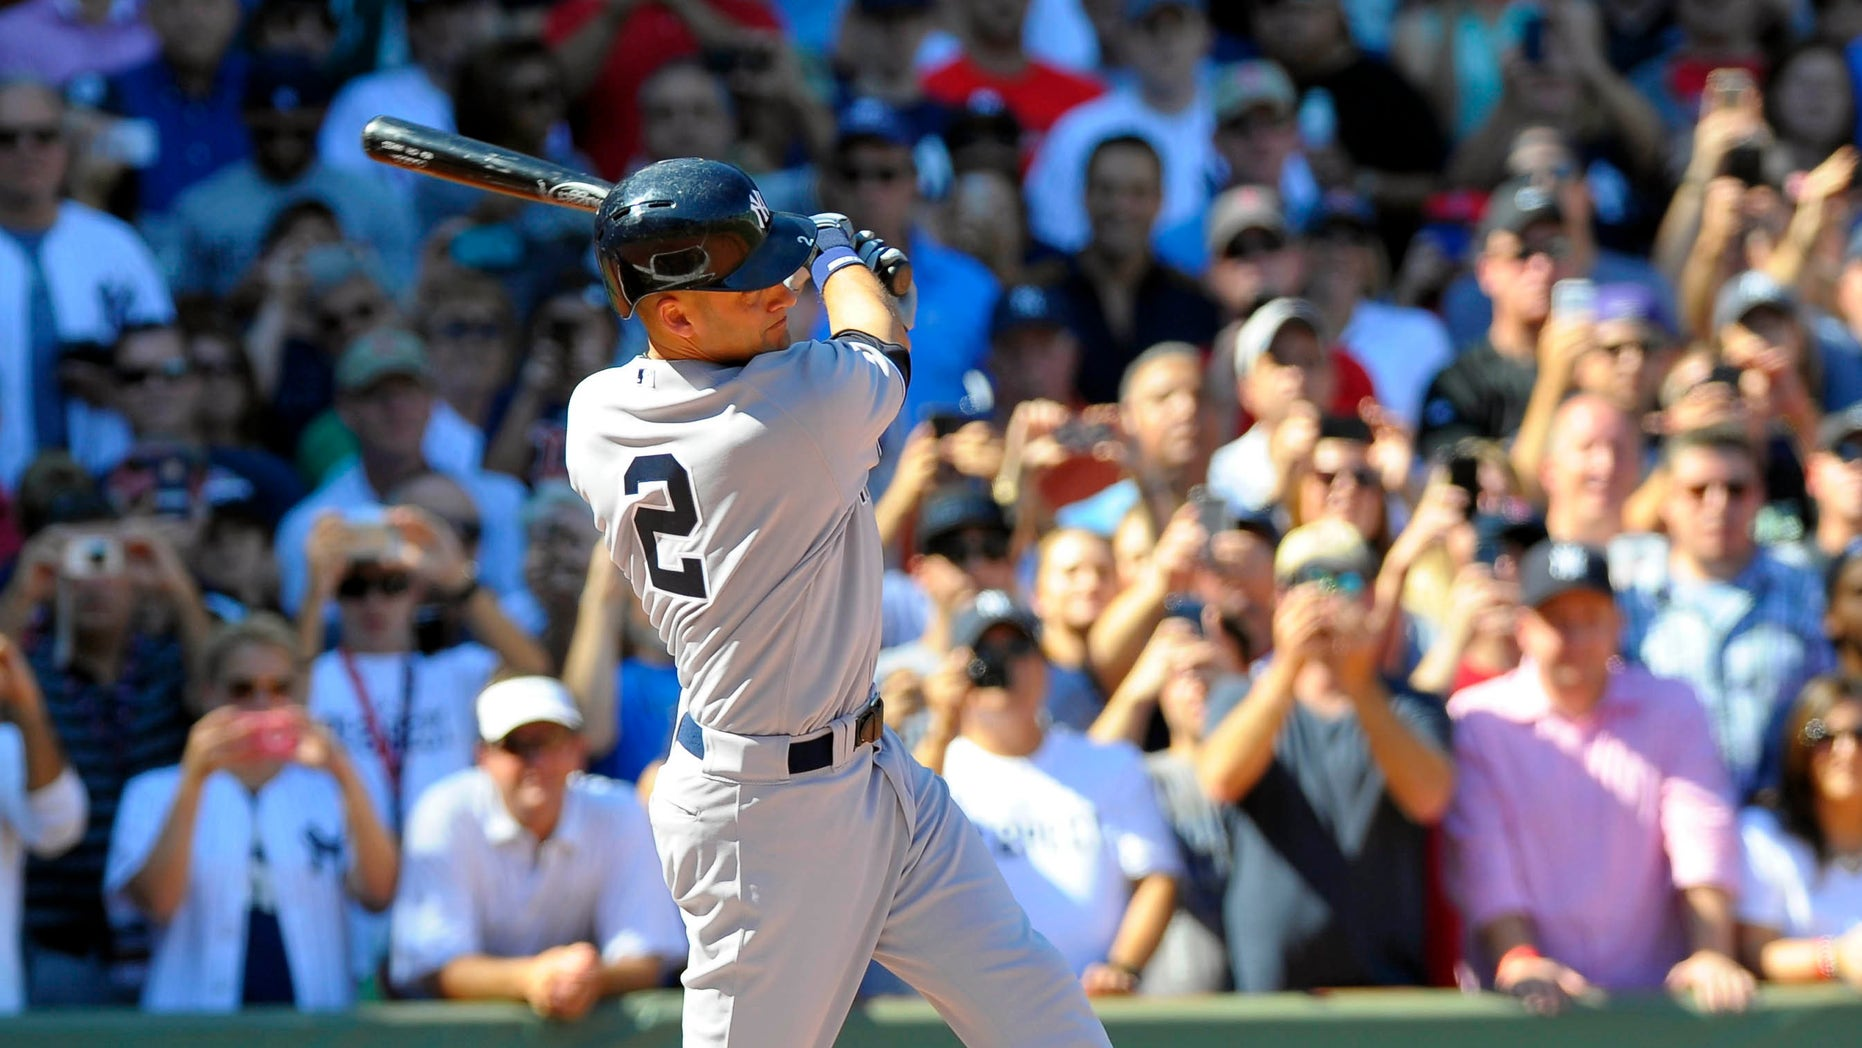 Sep 27, 2014; Boston, MA, USA; New York Yankees shortstop Derek Jeter (2) at bat during the first inning against the Boston Red Sox at Fenway Park. Mandatory Credit: Bob DeChiara-USA TODAY Sports - RTR47YY0